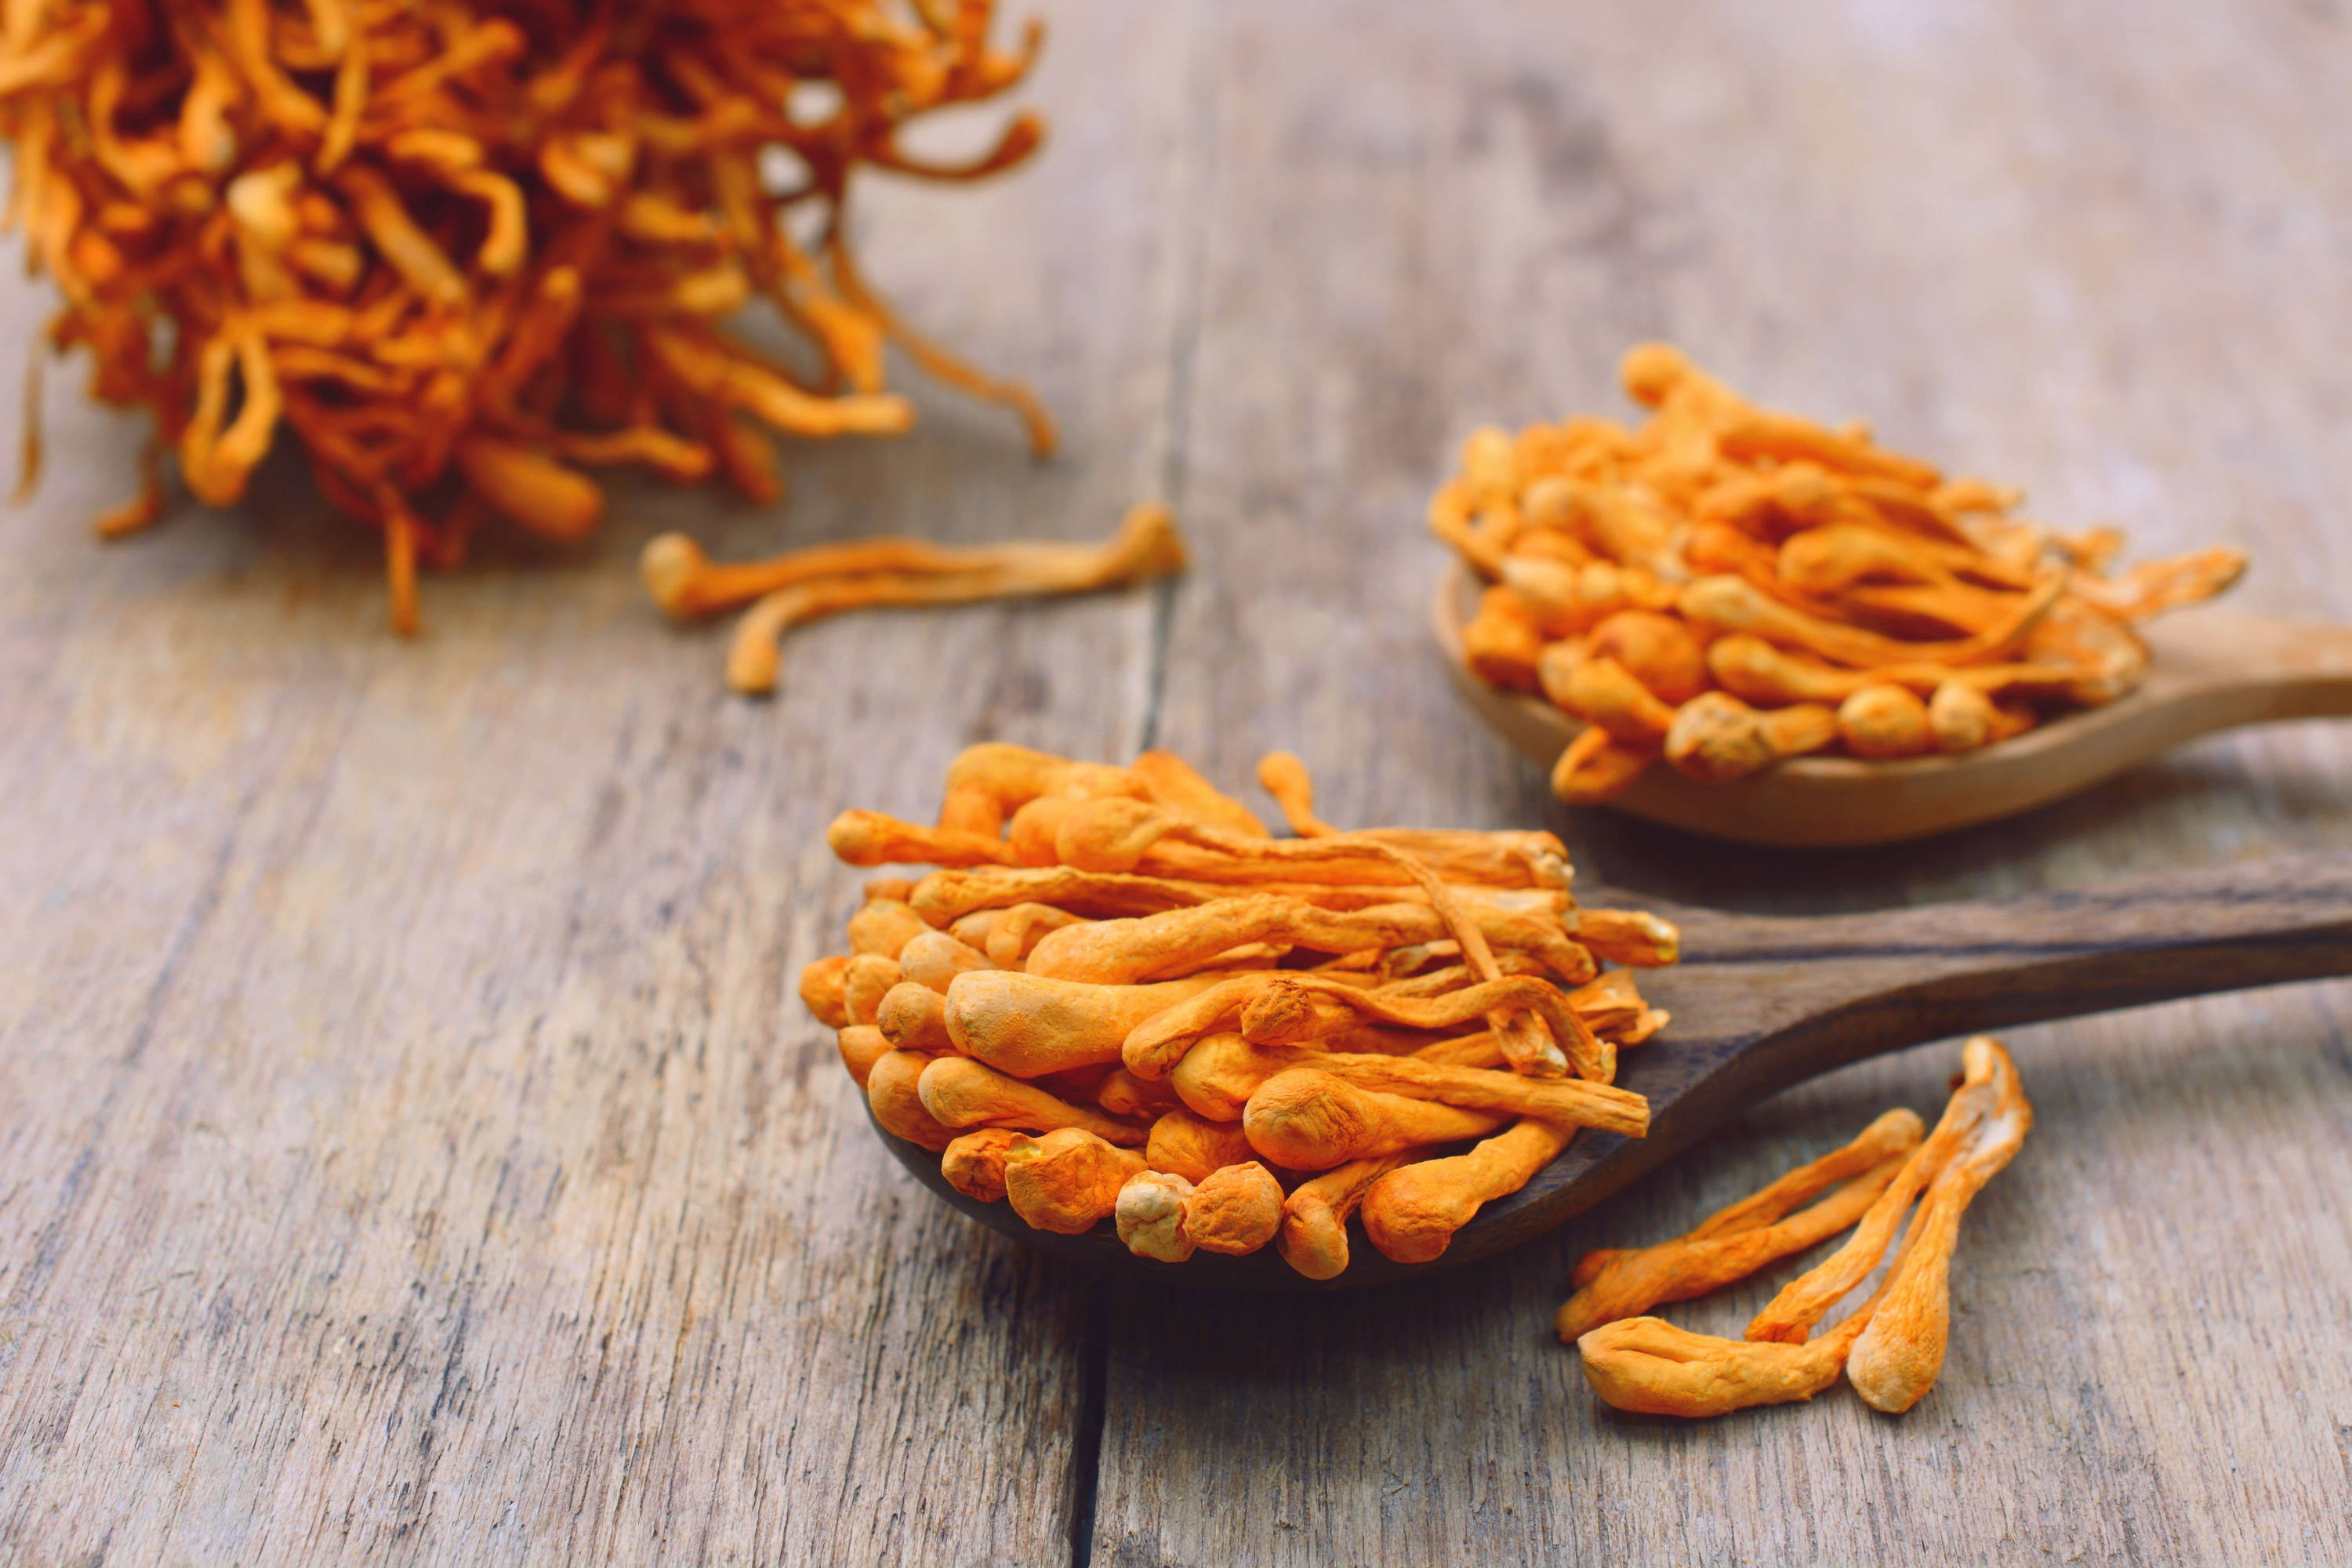 Cordyceps mushroom harvested and dried to be used in mushroom coffee for its health benefits